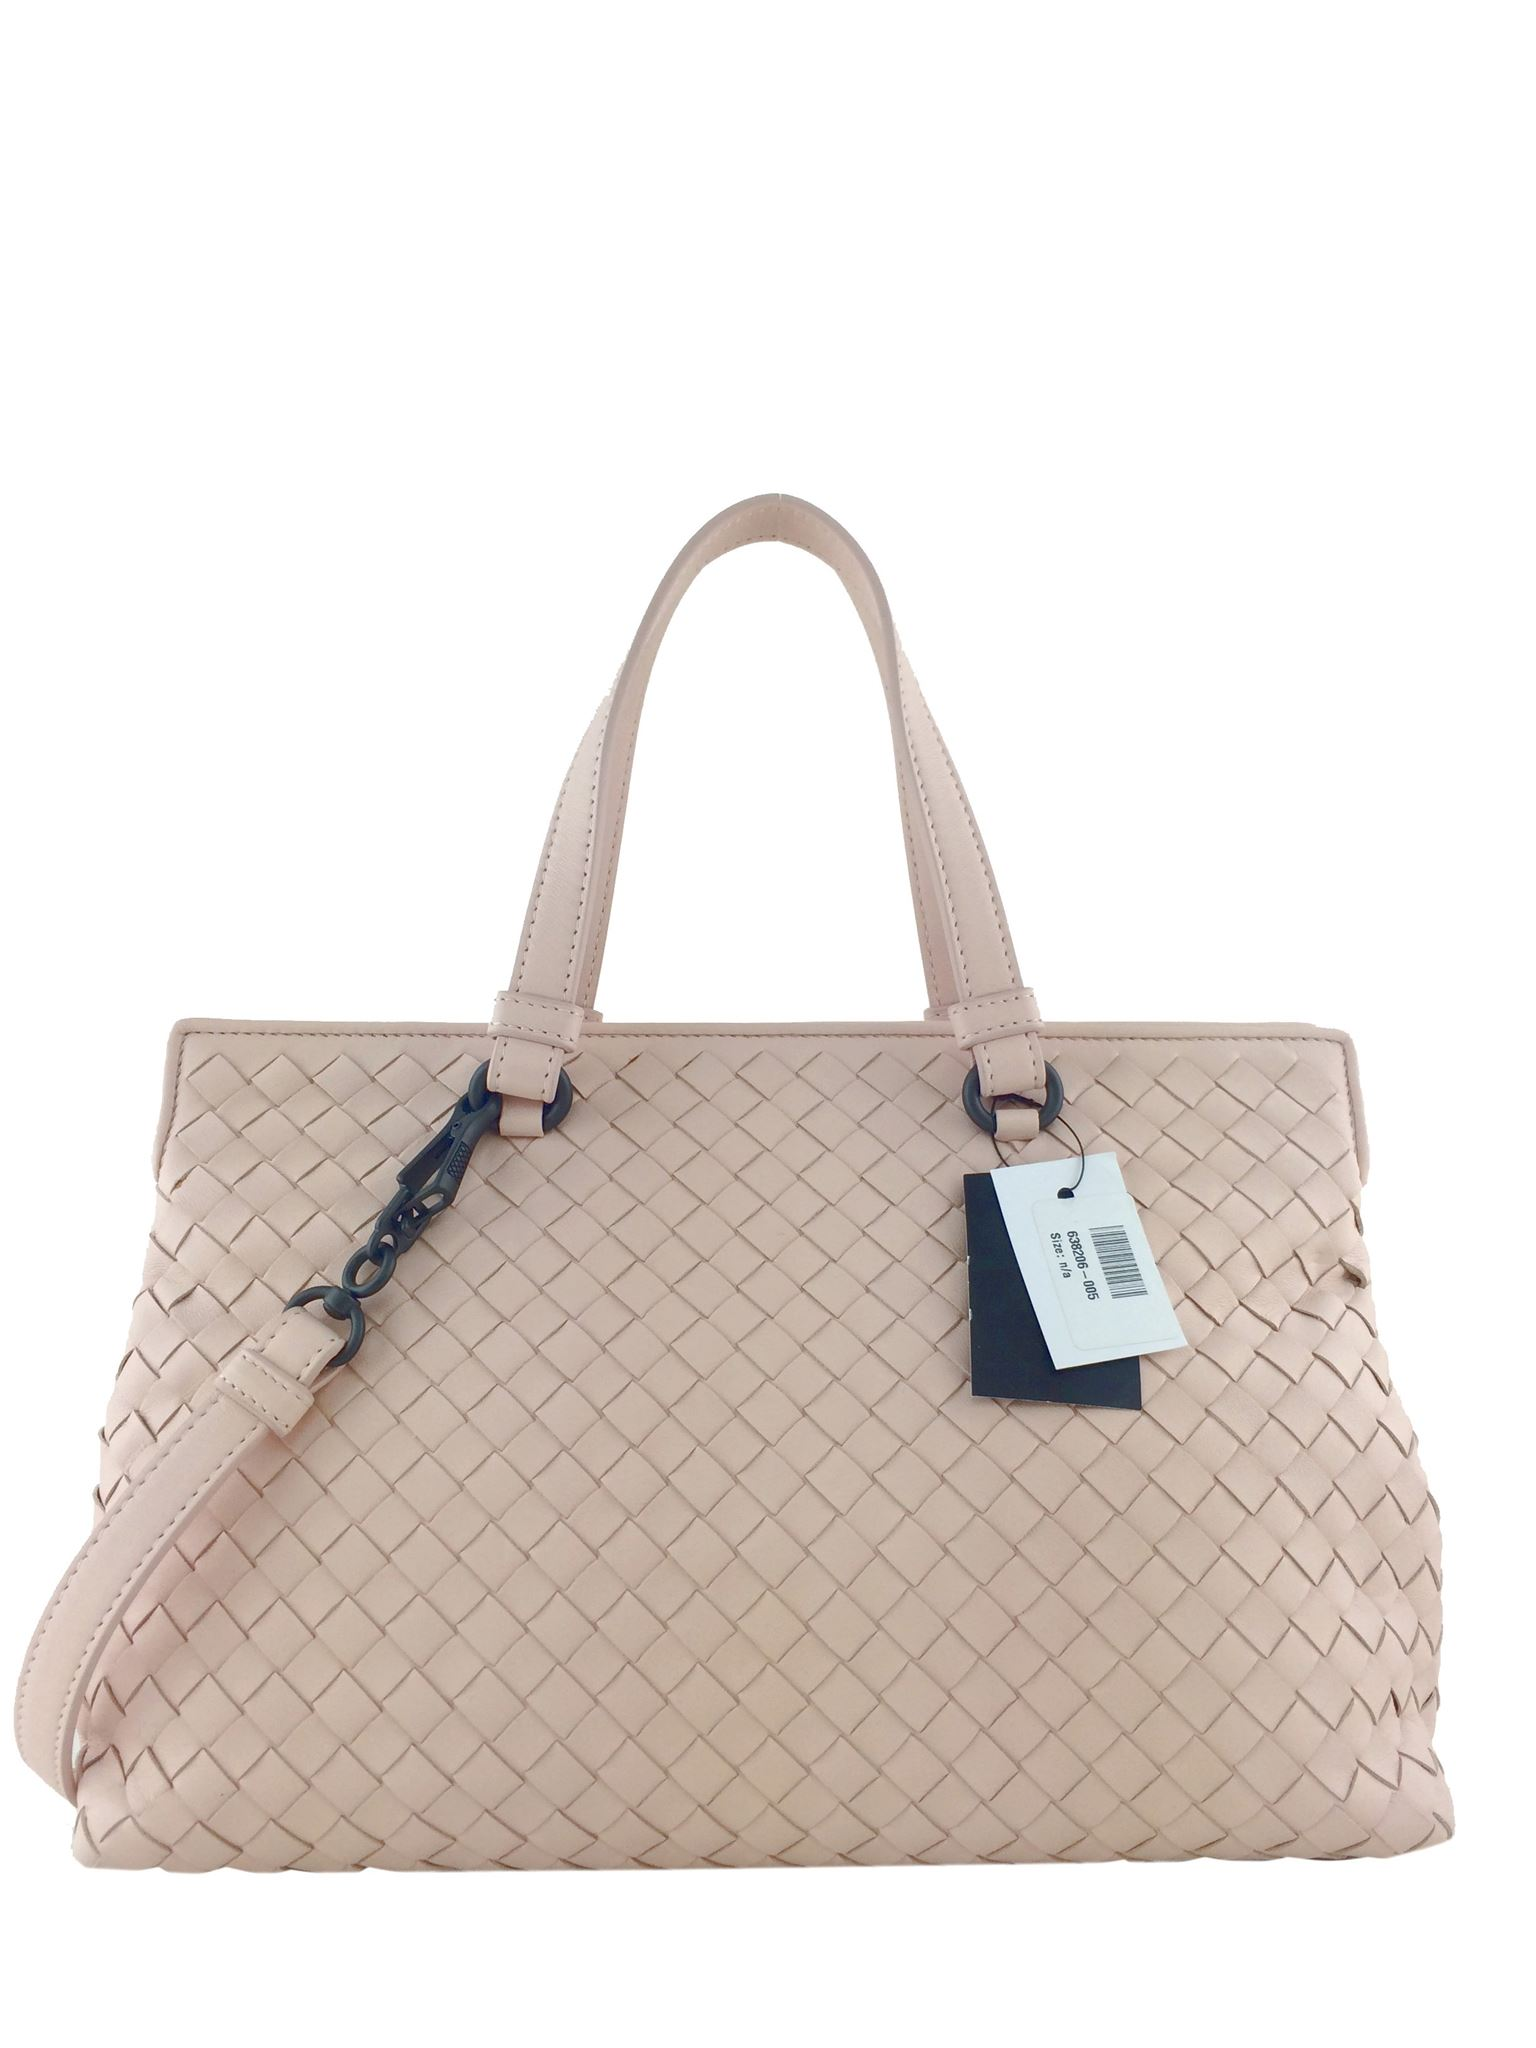 c792eddebc Details about Bottega Veneta Intrecciato Nappa Medium Top Handle Bag NEW